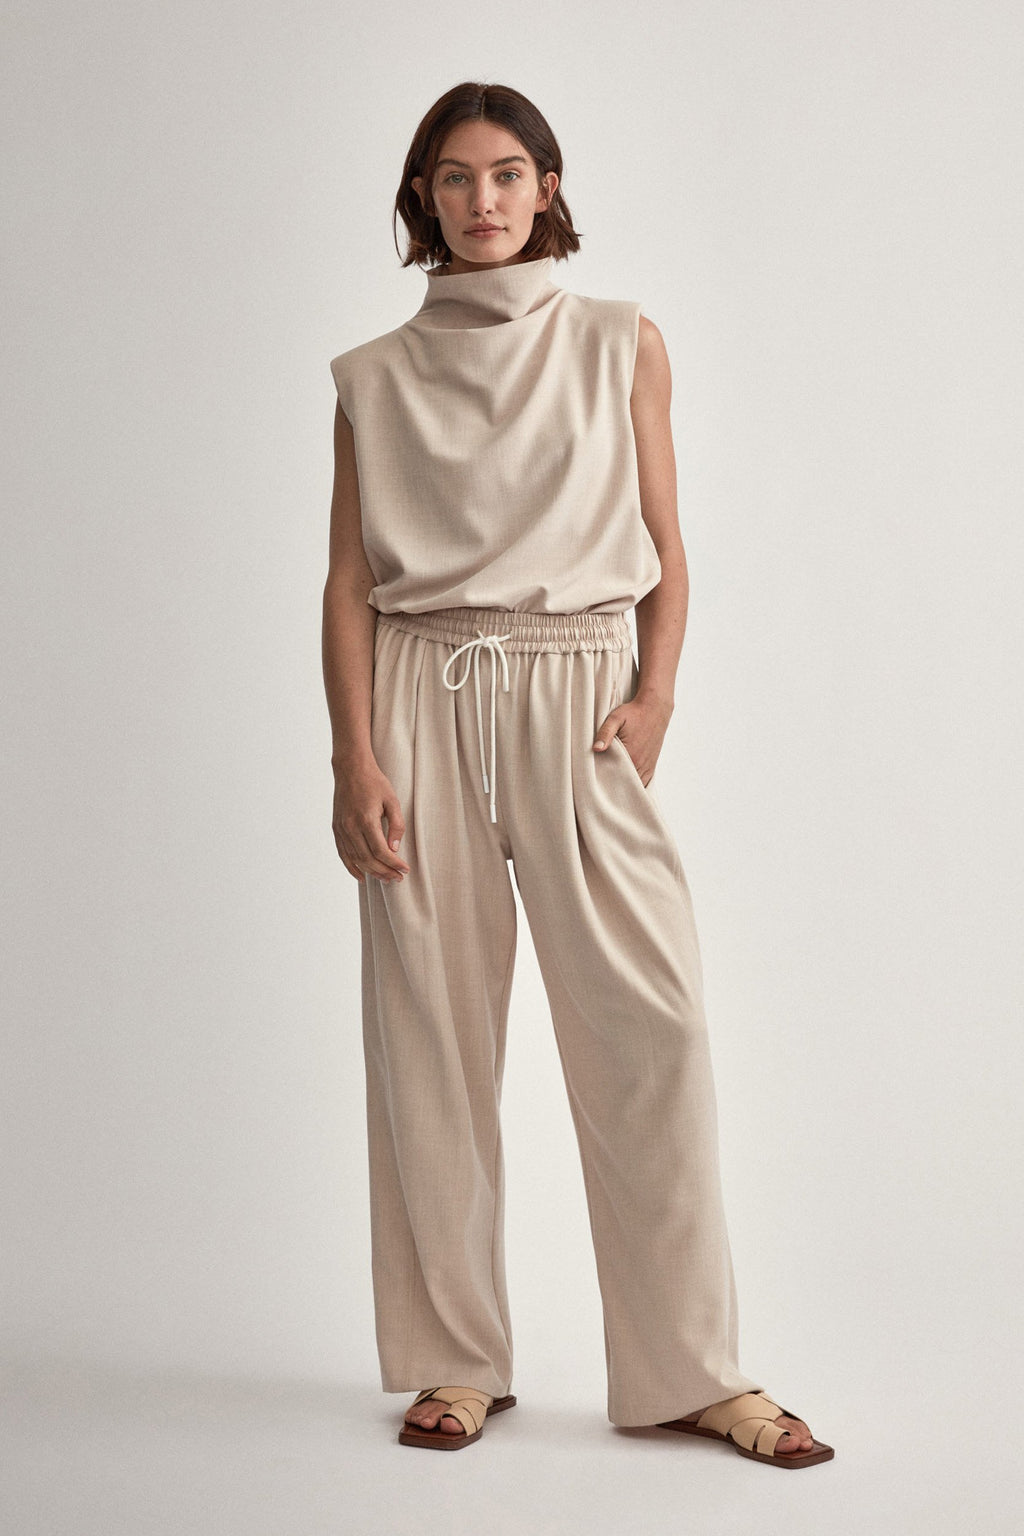 Camilla And Marc / Benito Blocked Pant / Oatmeal